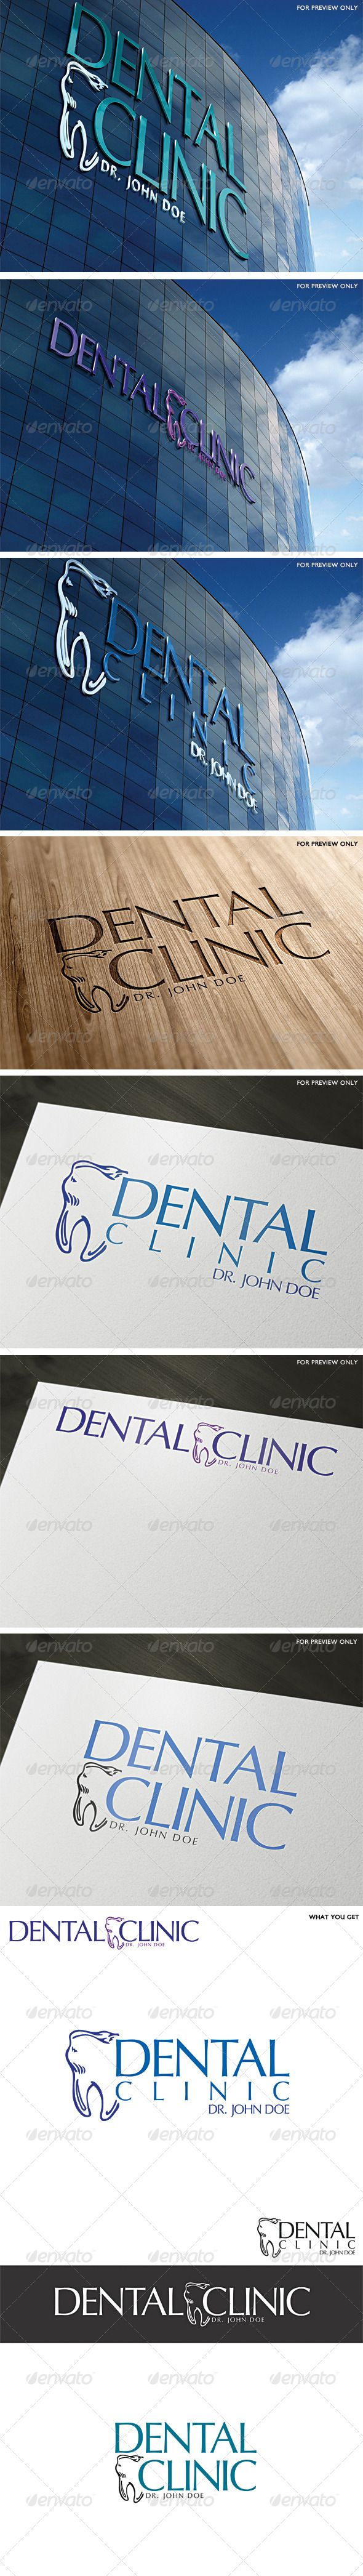 Dental Clinic Logo Template #GraphicRiver A modern fresh design, perfect for any dental business or company • Fully vector • Easy to edit text (link to fonts included in help file) • CMYK at 300DPI • AI and EPS files Note: The top 3D wall signs are for preview only should you need any further assistance, don't hesitate to contact me. Please take a moment to rate this item (: My Logo Designs NEW!!! 2012 London Olympics Flyer Template NEWEST PARTY FLYER* Unique Summer Drinks Flyer Template…